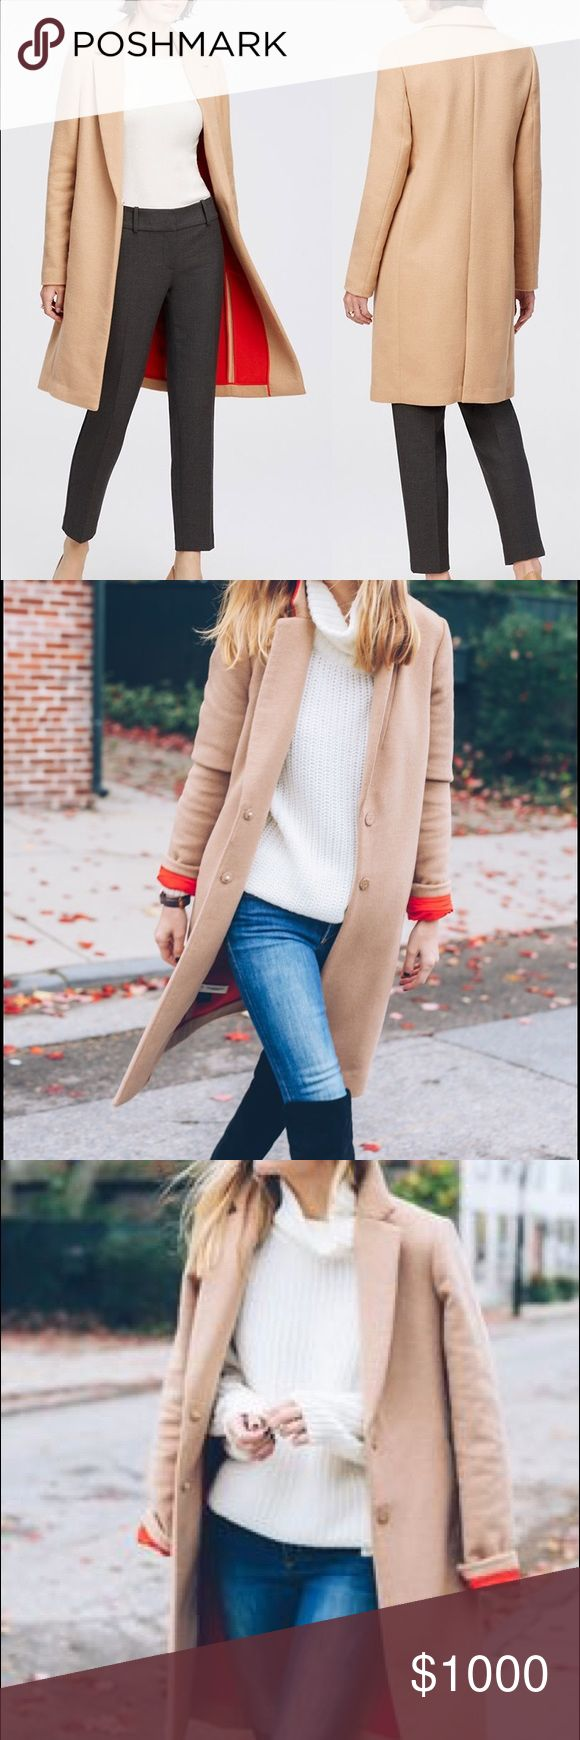 ISO‼️Ann Taylor XSP camel coat‼️ Ann Taylor xsmall petite camel coat with red lining. It's from the 2015 winter collection (last year) and I want it desperately. Please let me know if you have one or have seen one. Ann Taylor Jackets & Coats